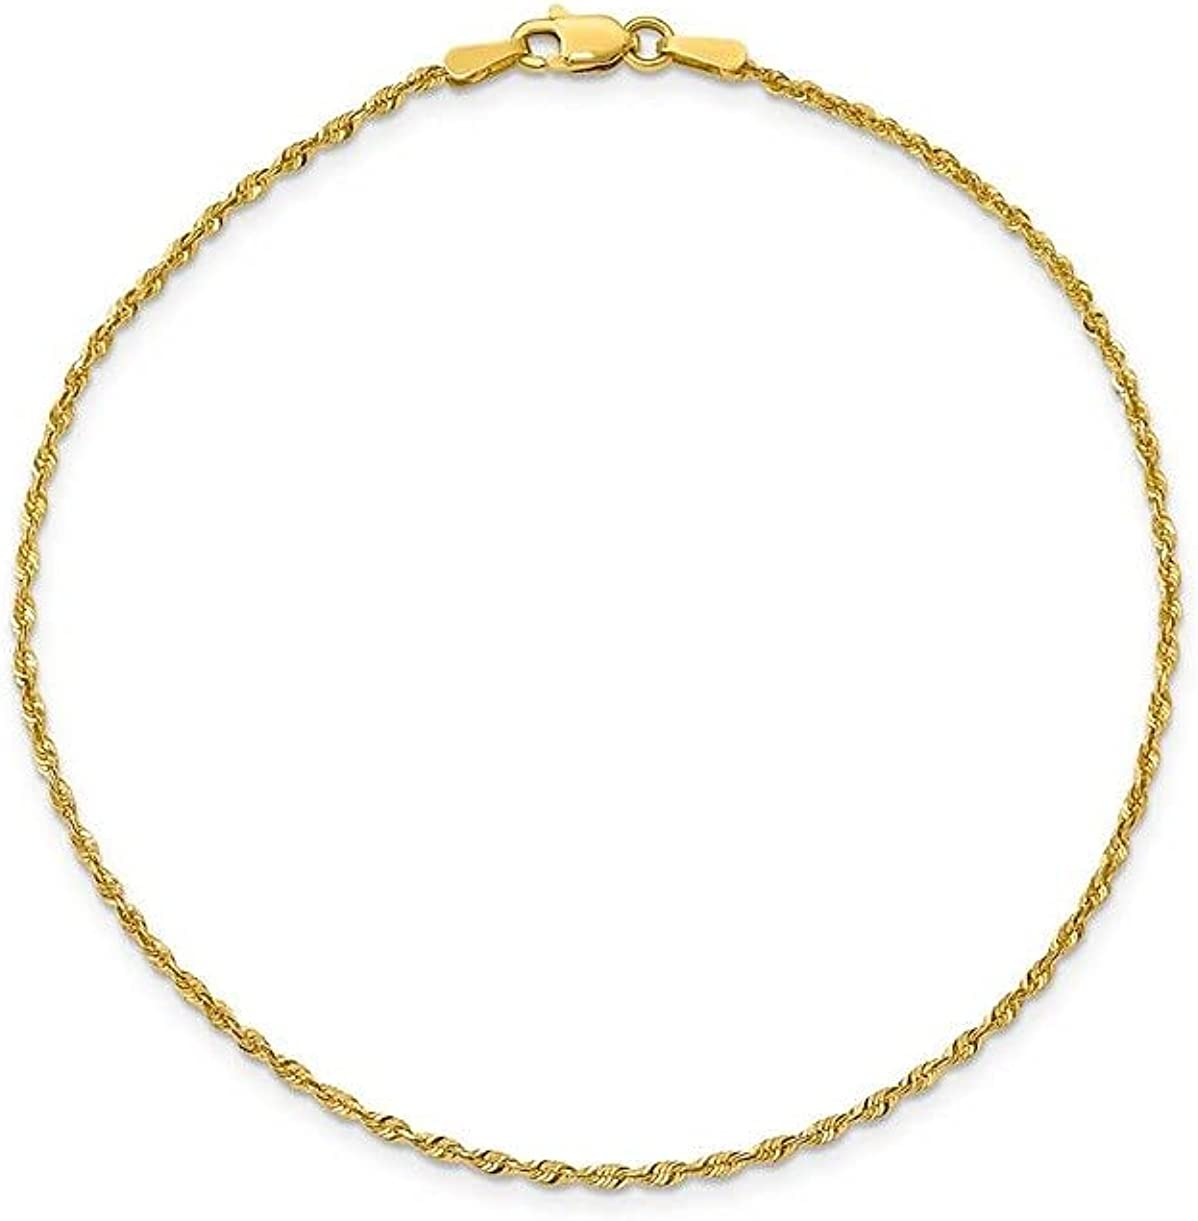 14K Gold Anklets for Women. 14K 10 Inch Anklet, Gold Rope chain Anklet, 14K Box Chain, Cuban Chain, Figaro Chain, Anklet Summer Beach Gold Jewelry, Foot Jewelry Ankle Bracelet